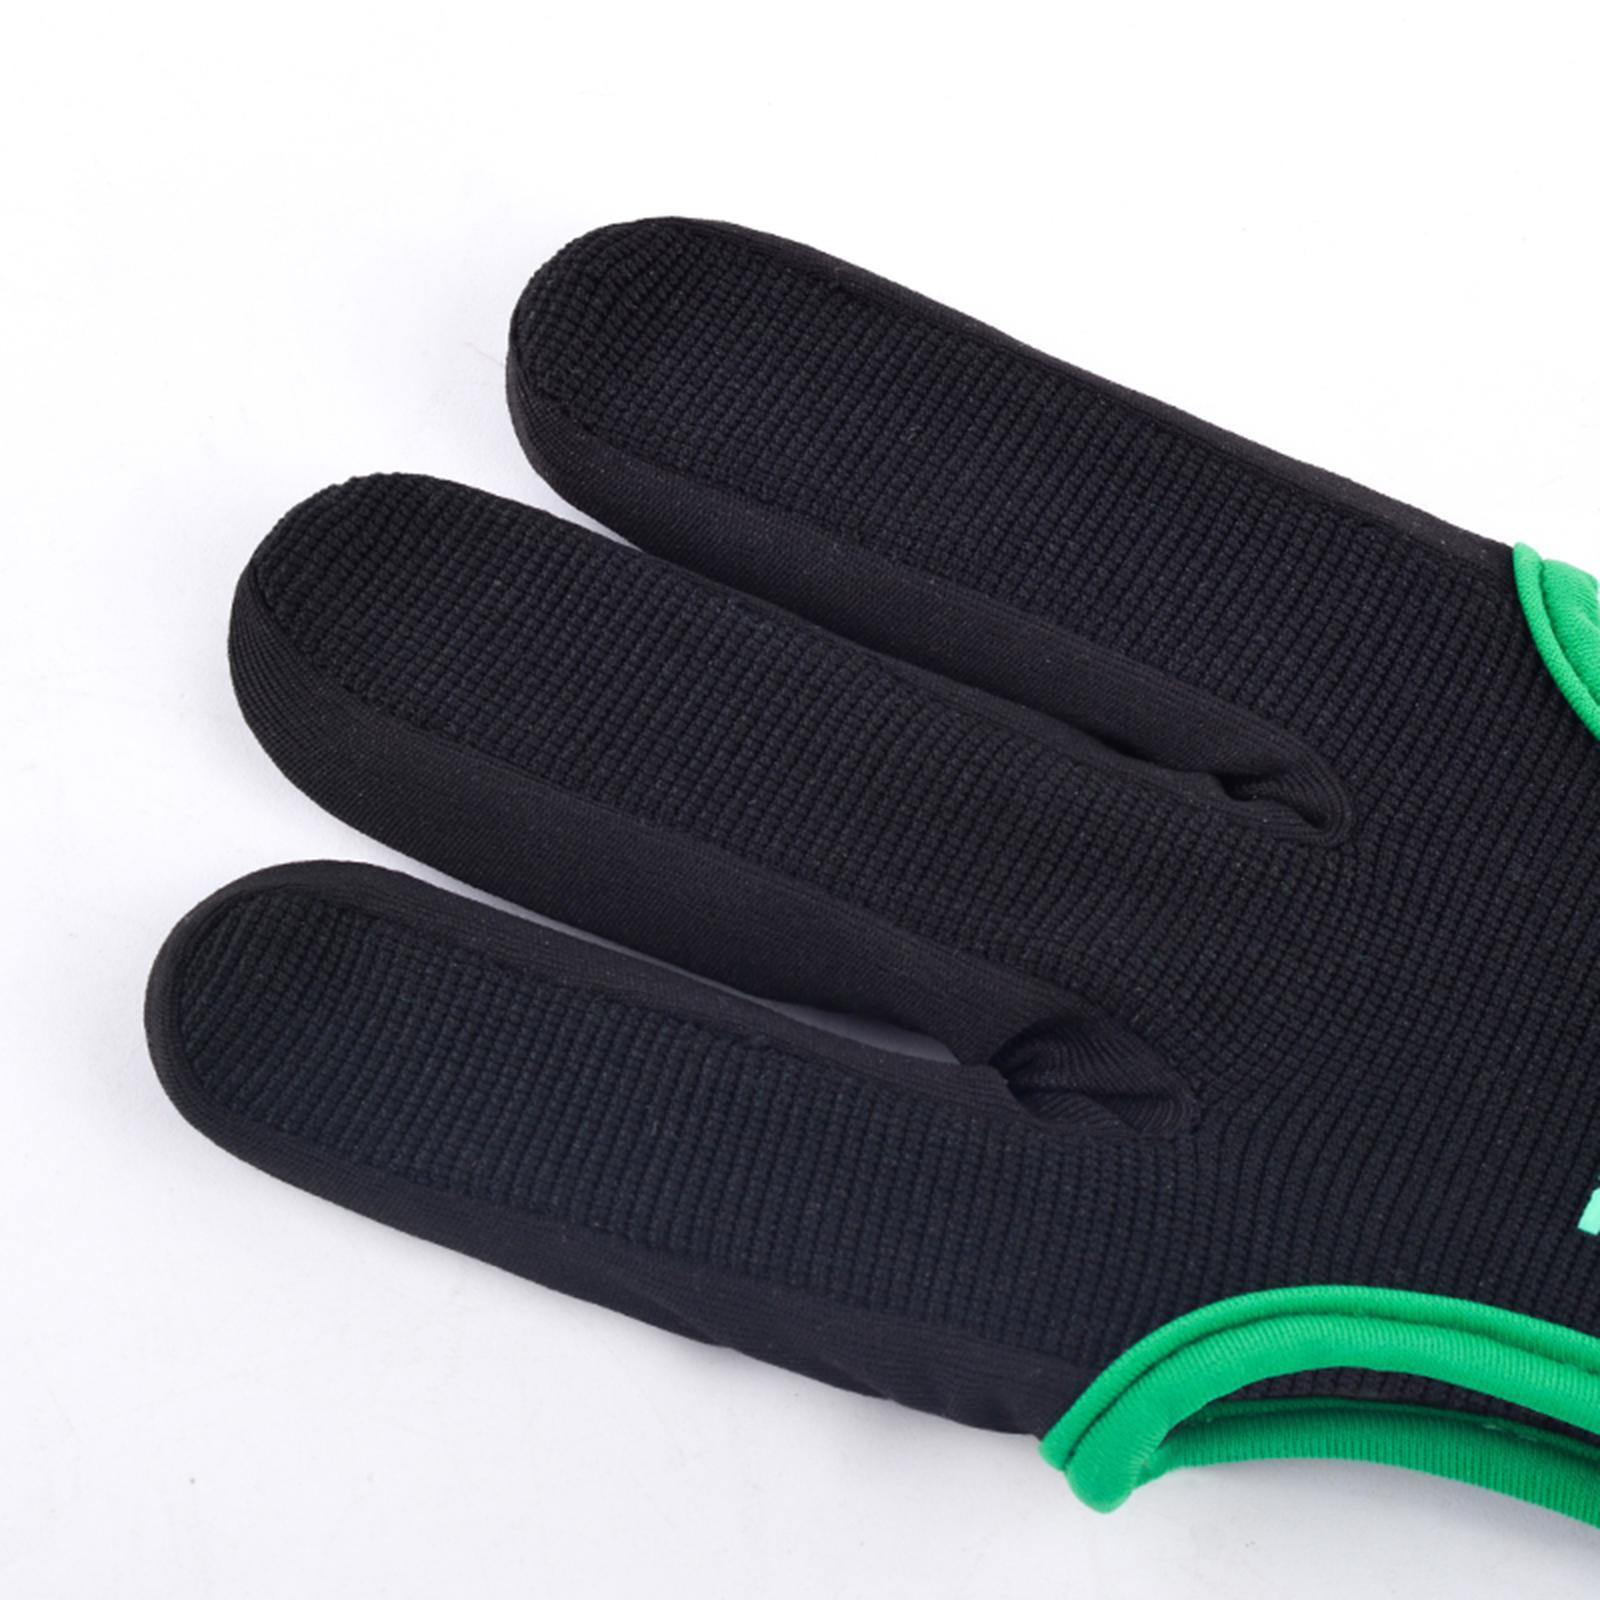 thumbnail 89 - Archery Glove for Recurve & Compound Bow 3 Finger Guard for Women Men Youth